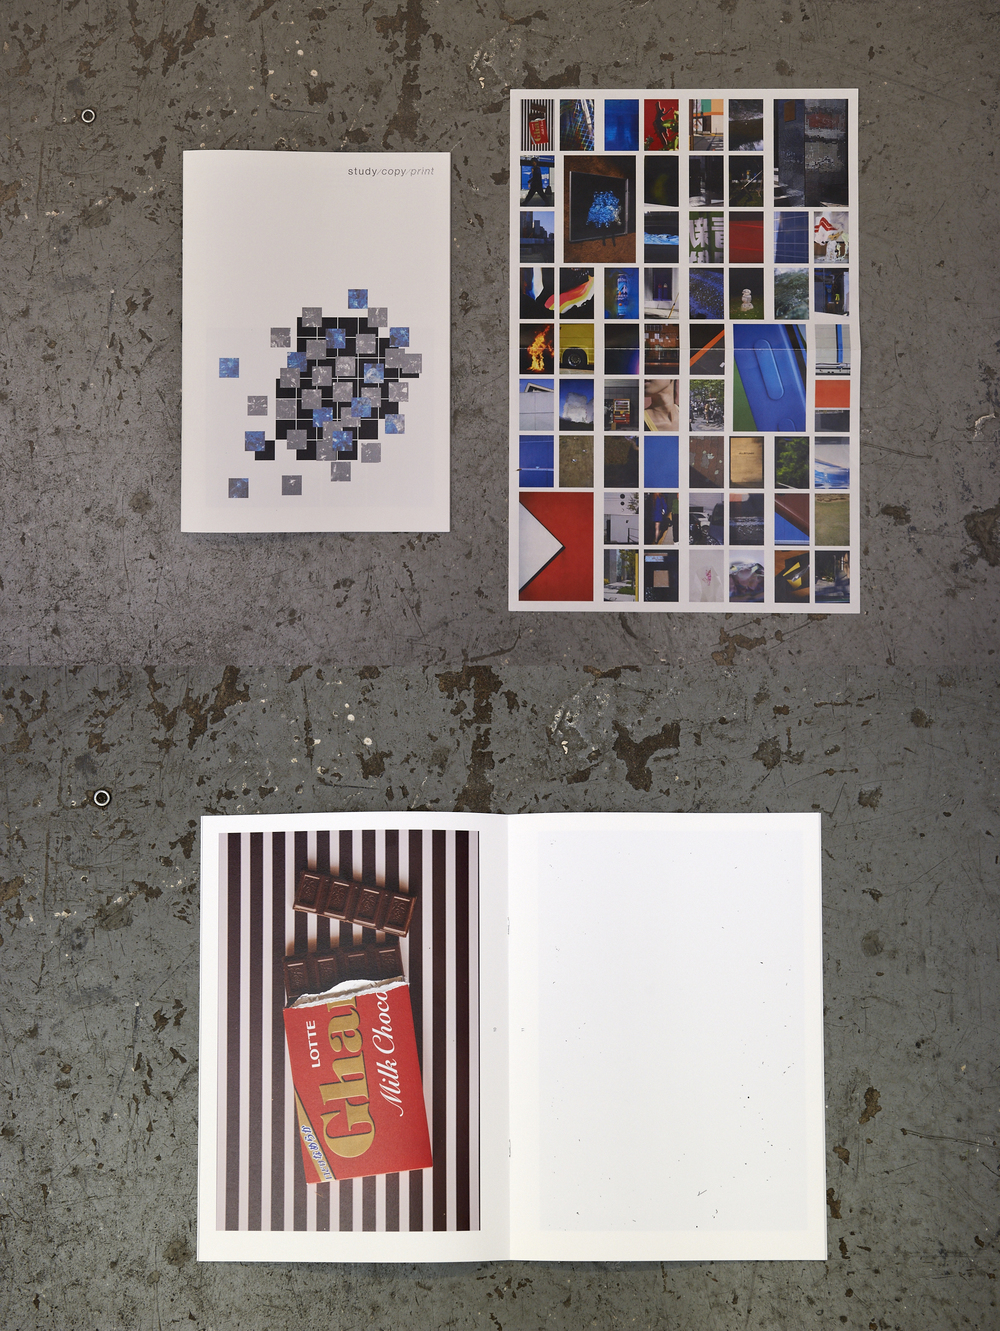 Exhibition Catalogue photography by go itami graphic design by hirokazu matsuda published by rondade ROND-23 Edition 500 Size: 210×297 mm Number of pages: 20 pages Type of printing: Offset